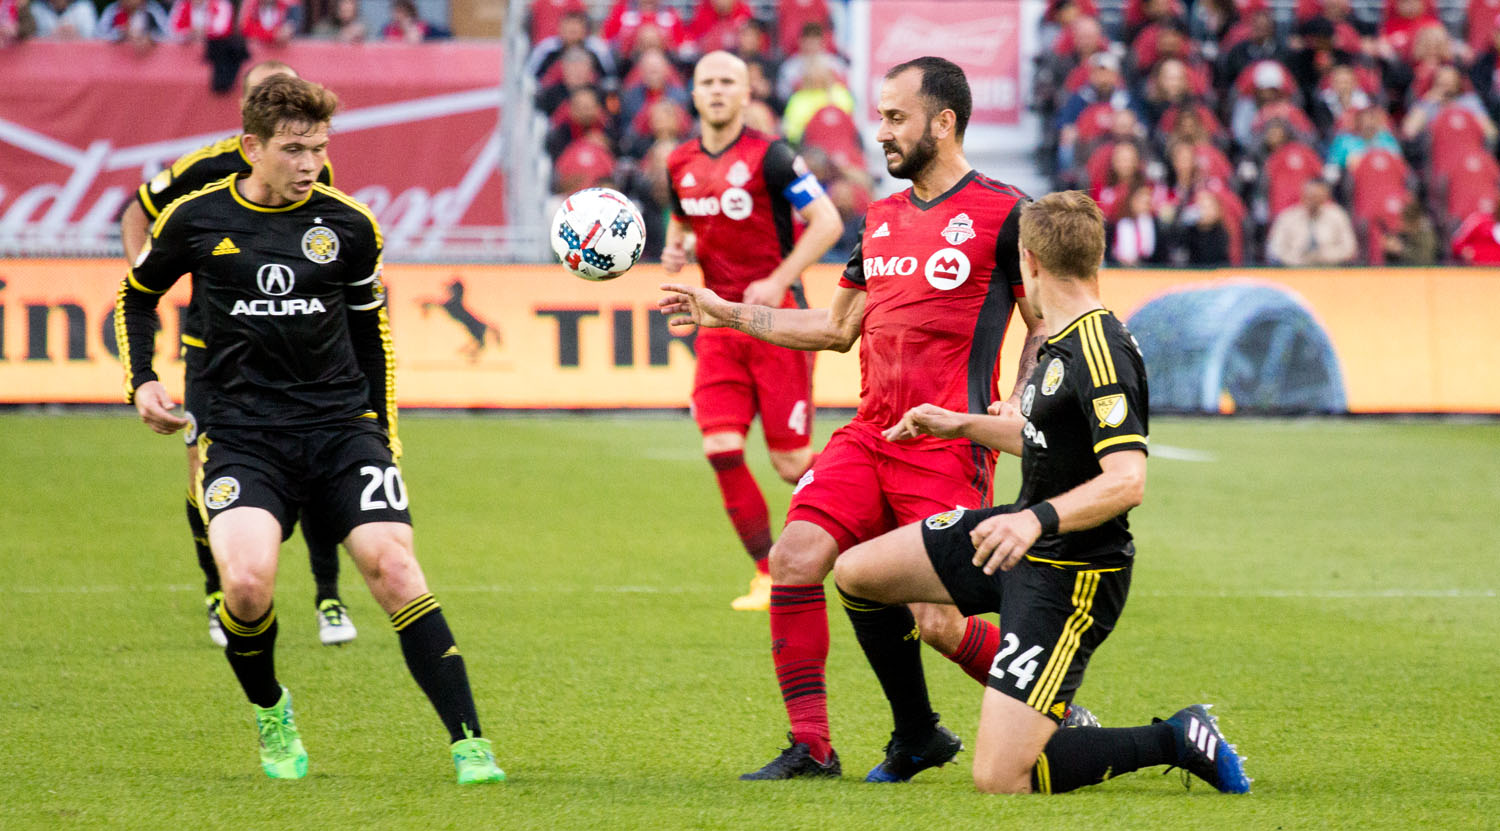 Toronto FC and Columbus Crew SC players attempt to deal with an aerial ball. Image by Dennis Marciniak of denMAR Media.